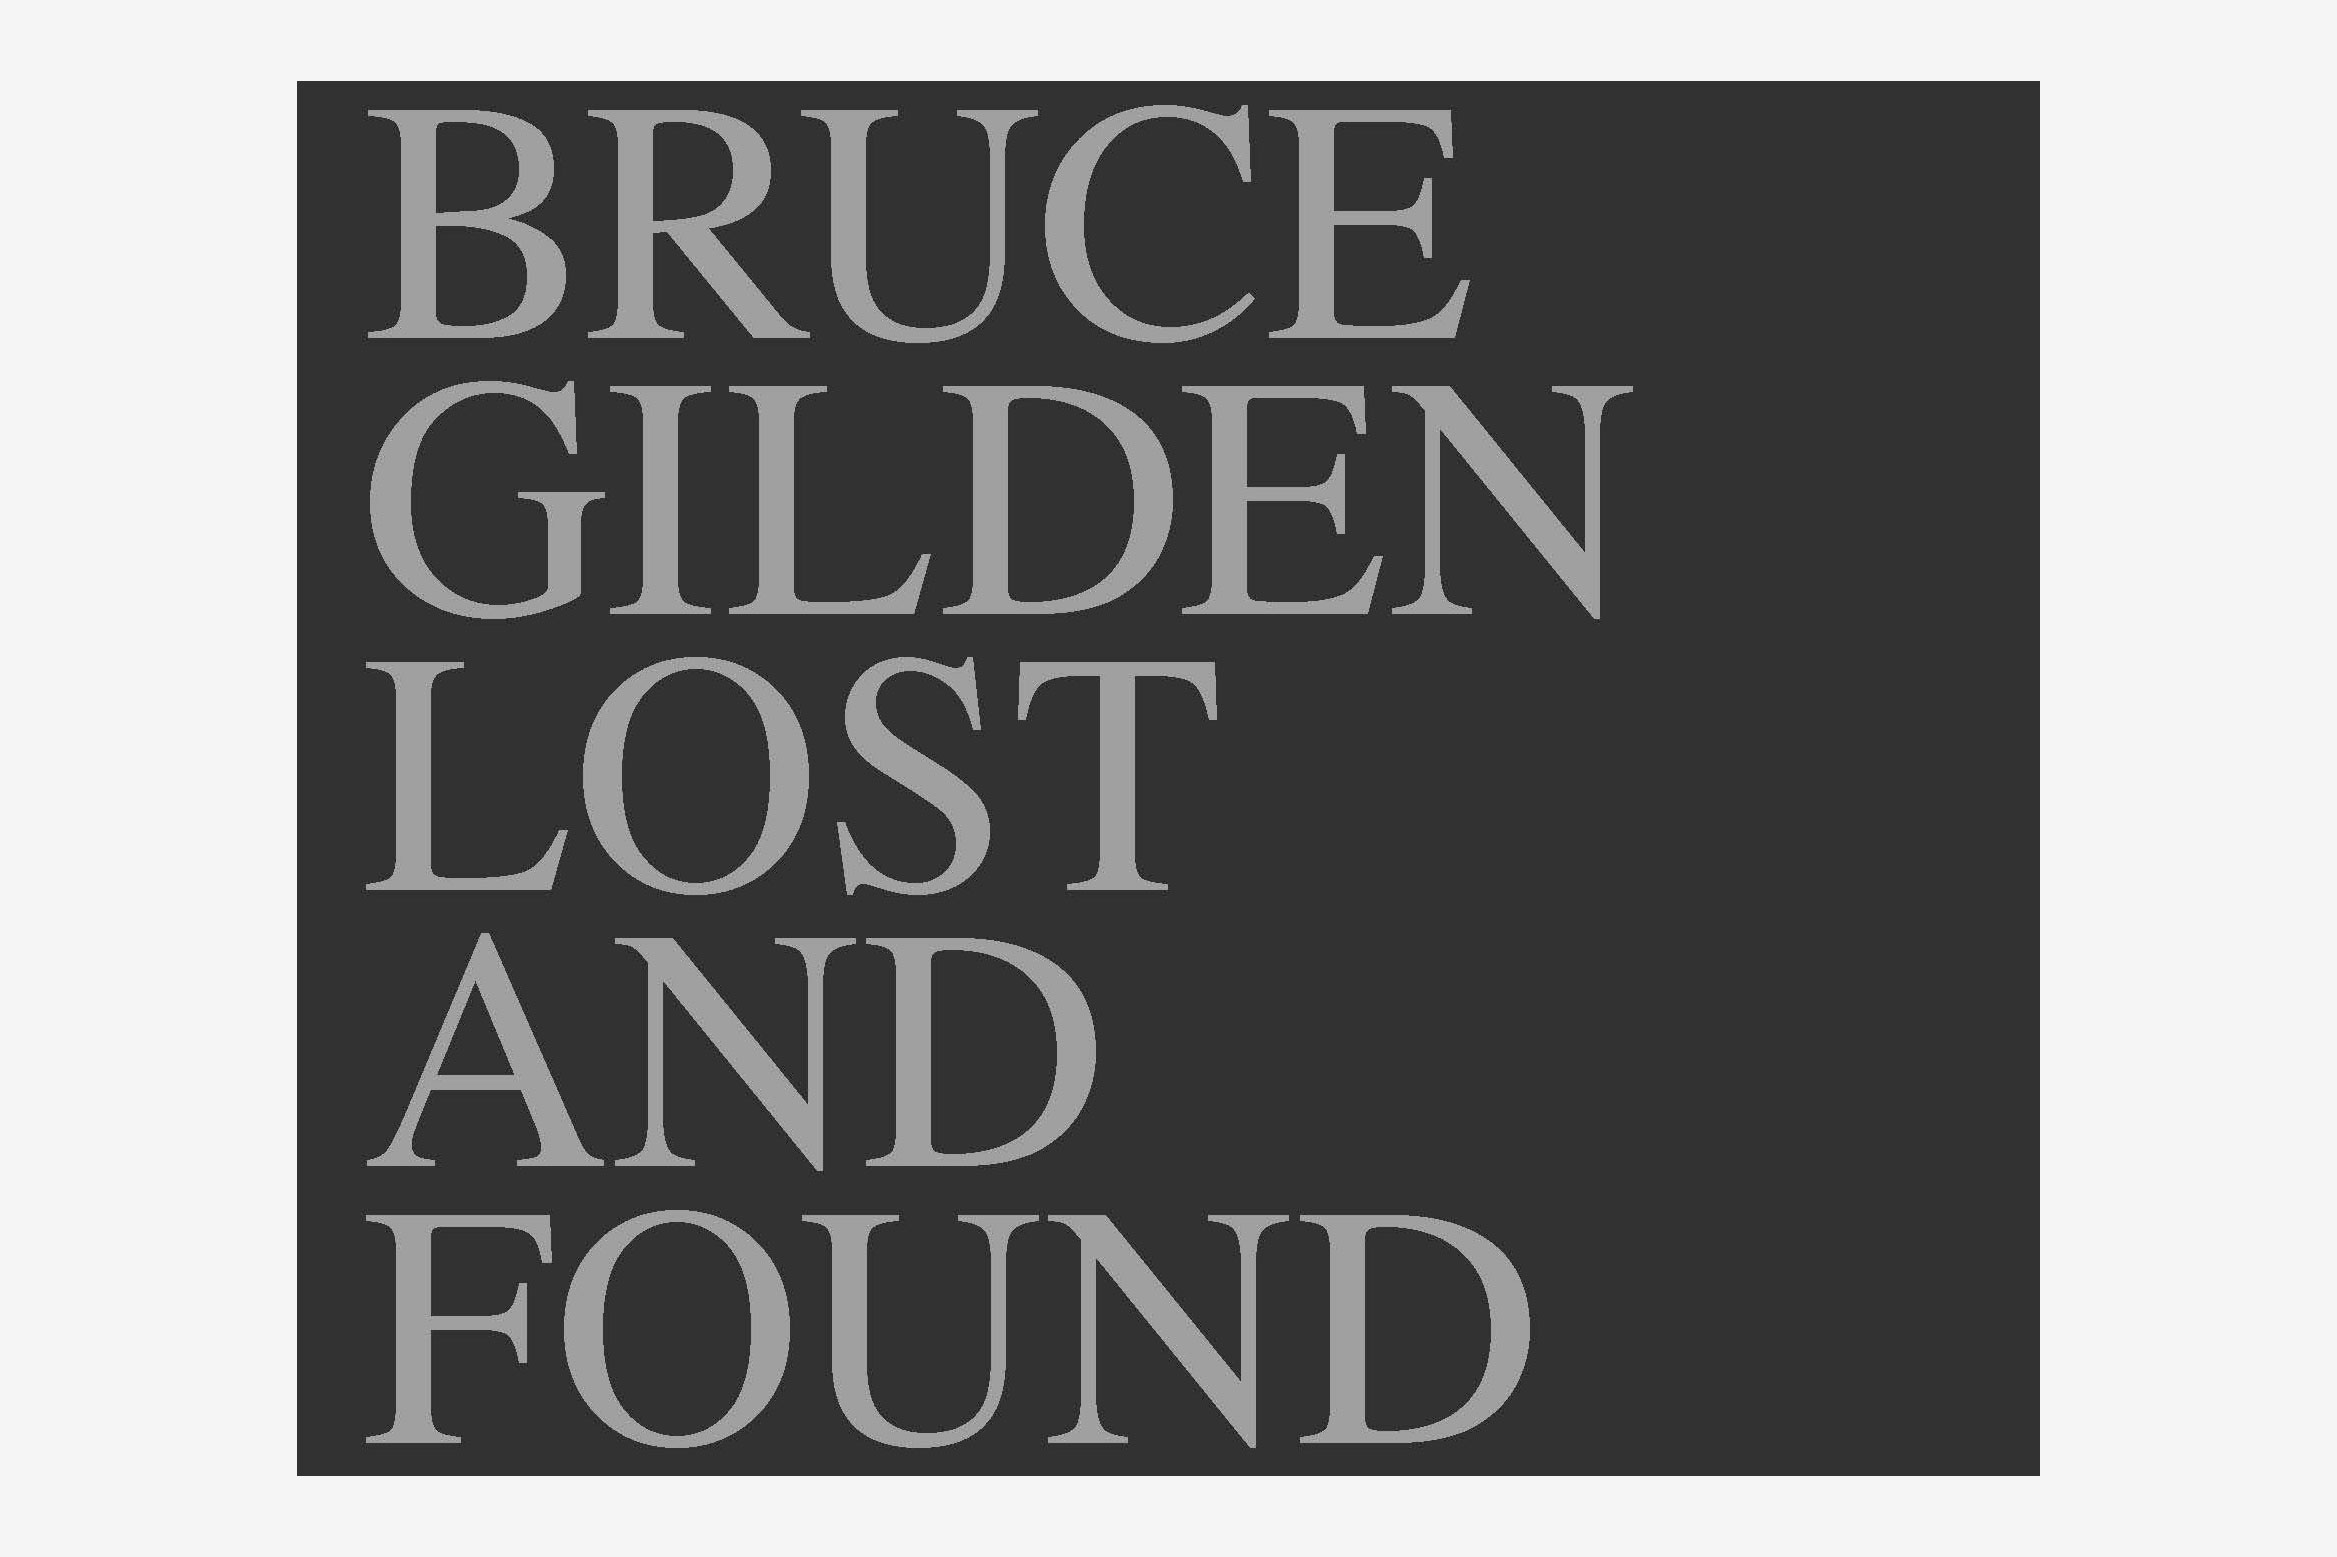 Lost and Found by Sophie Darmaillacq and Bruce Gilden